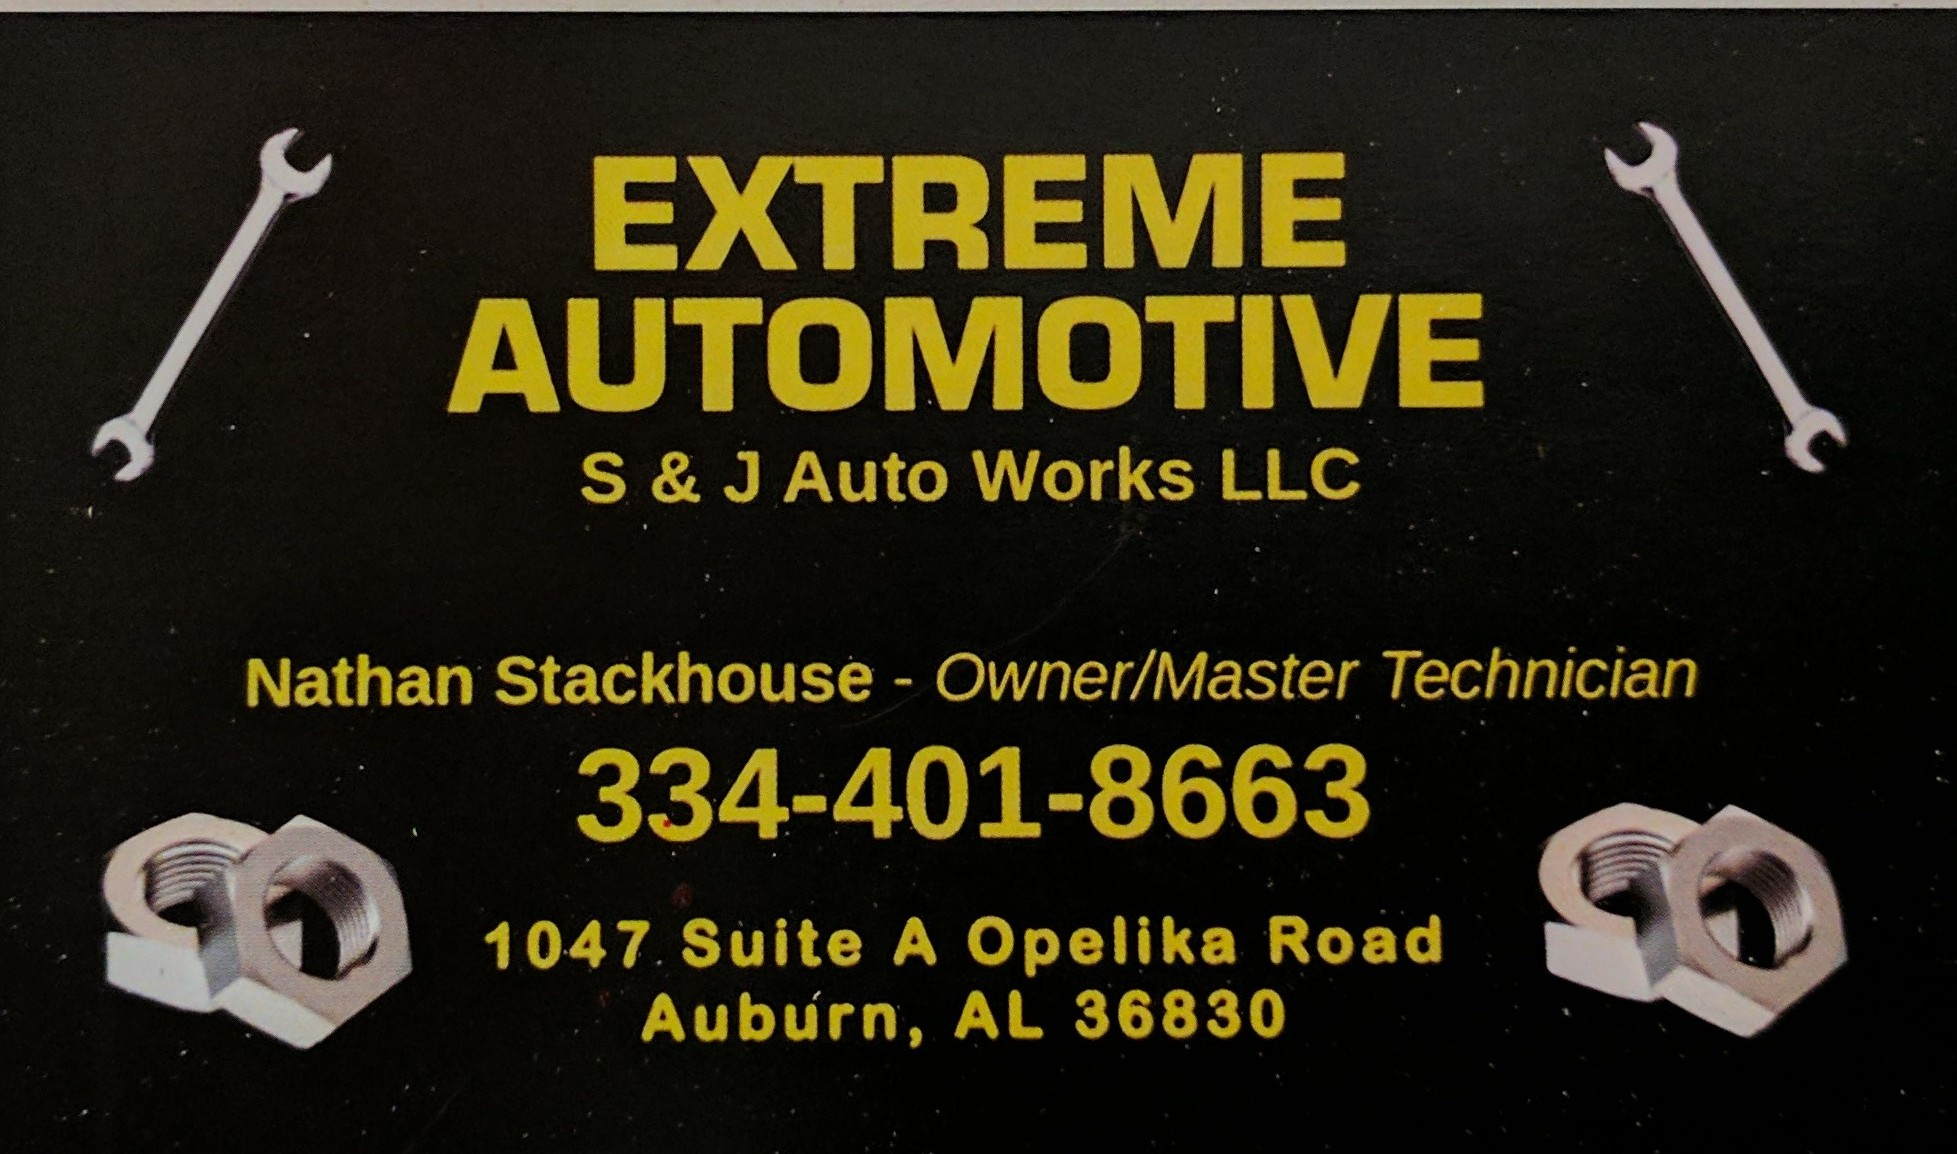 Extreme Automotive S&S Auto Works L L C 1047 Opelika Rd Suite A